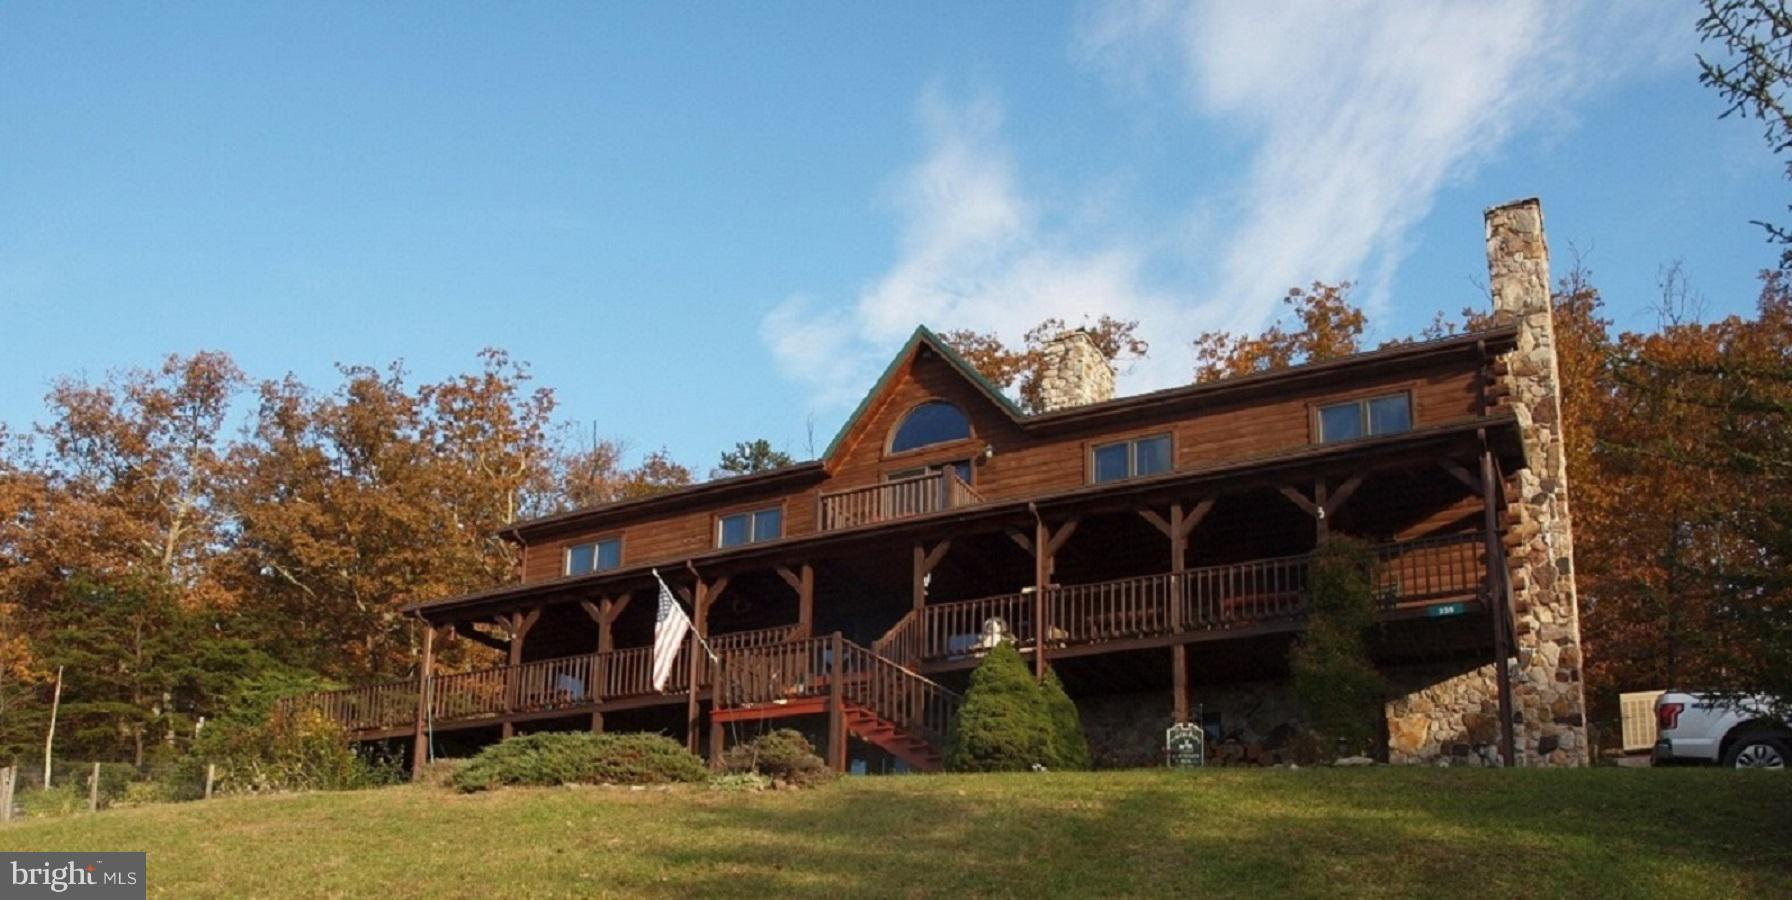 235 CANYON VIEW LANE, CABINS, WV 26855